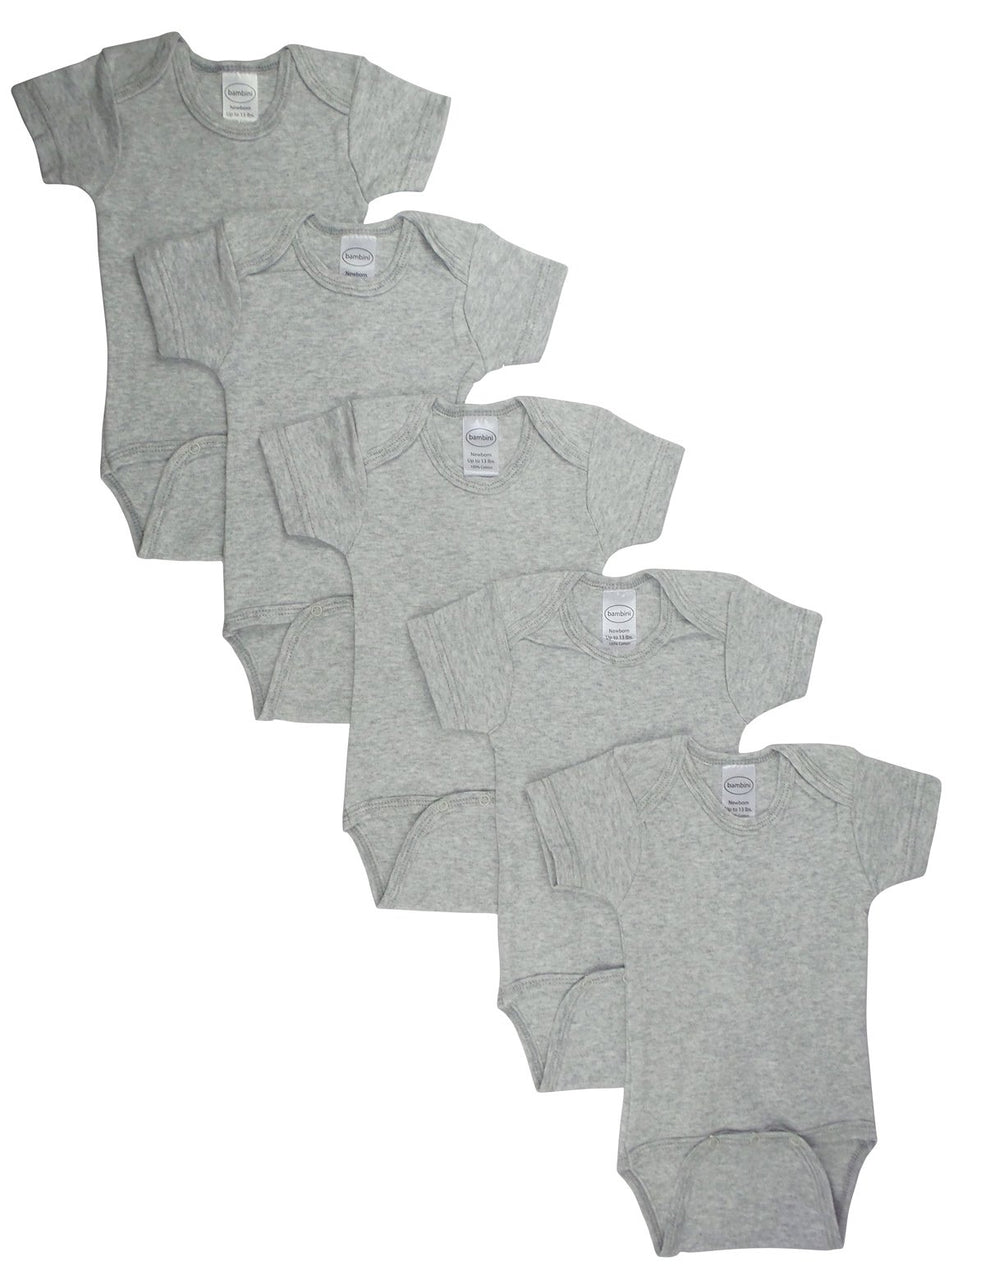 Baby Clothing - Heather Grey Interlock Short Sleeve Onesies (5 Pack)